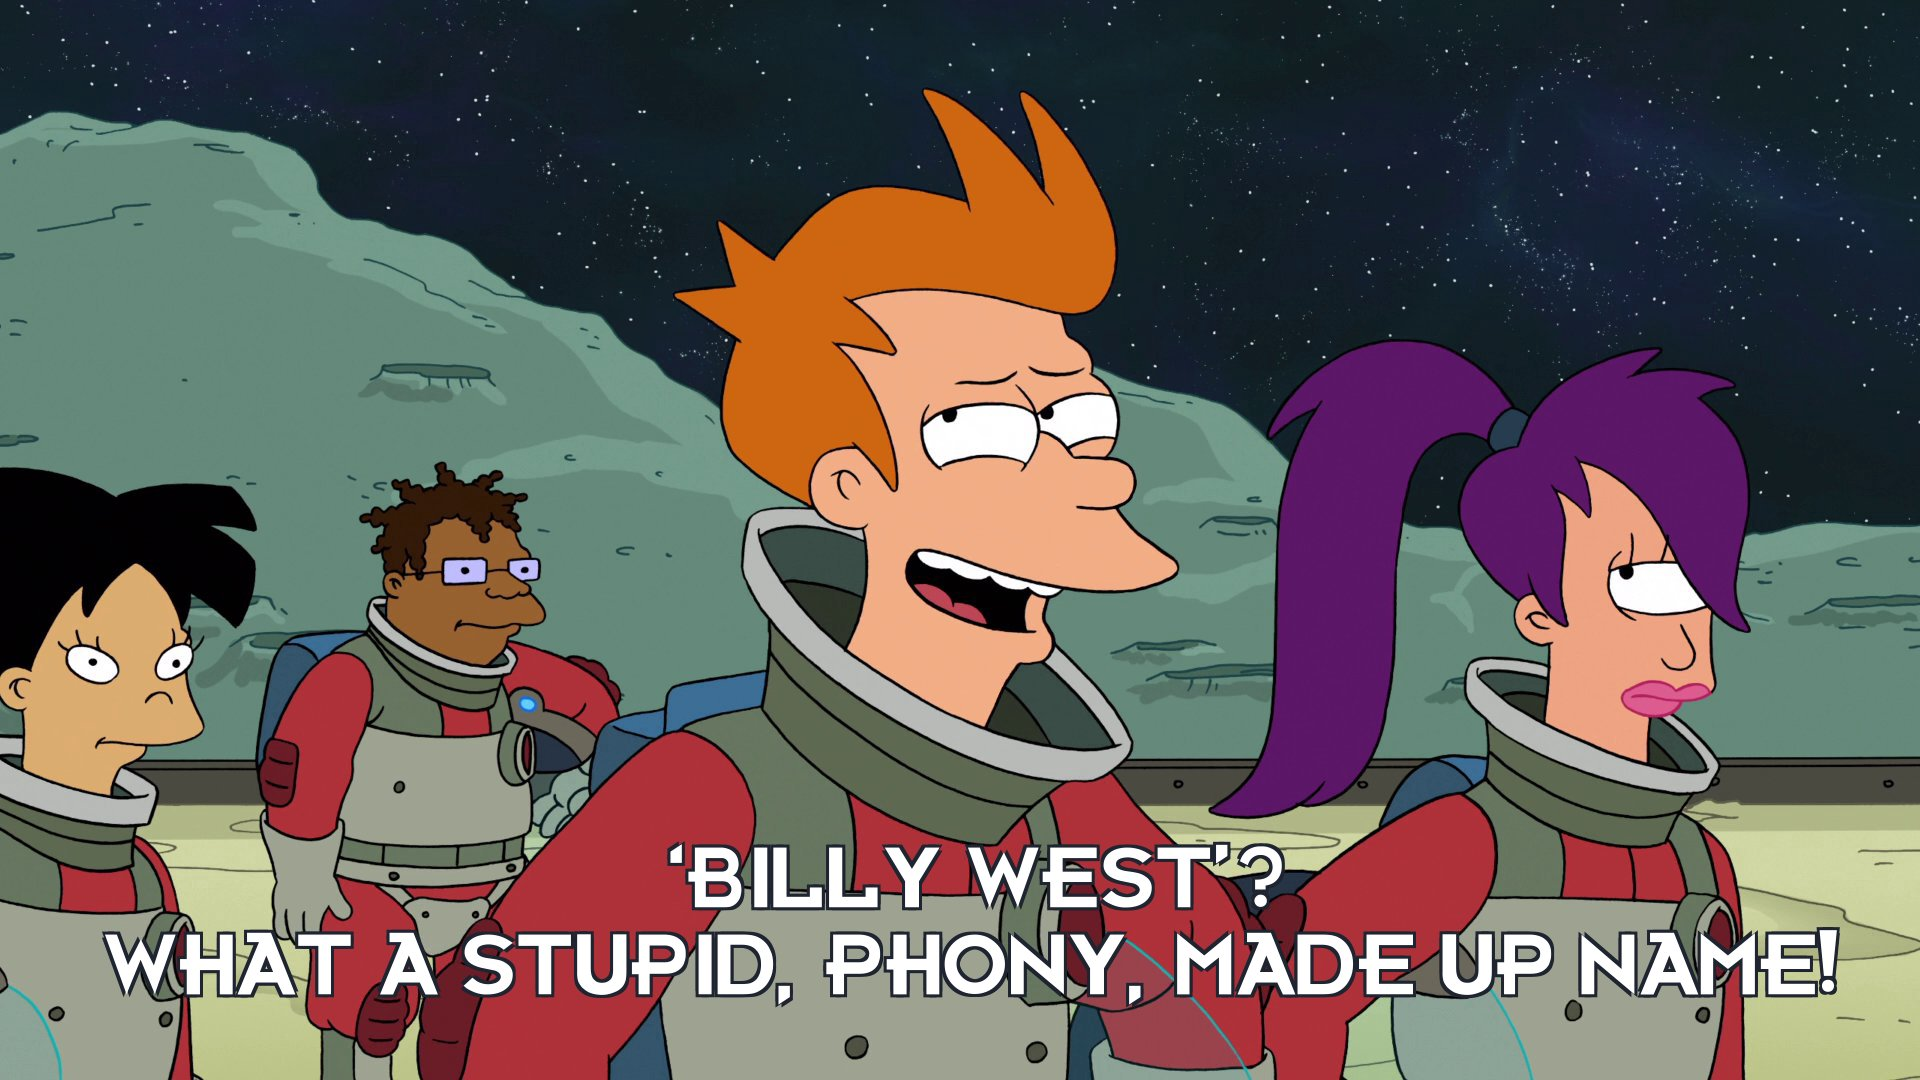 Philip J Fry: 'Billy West'? What a stupid, phony, made up name!